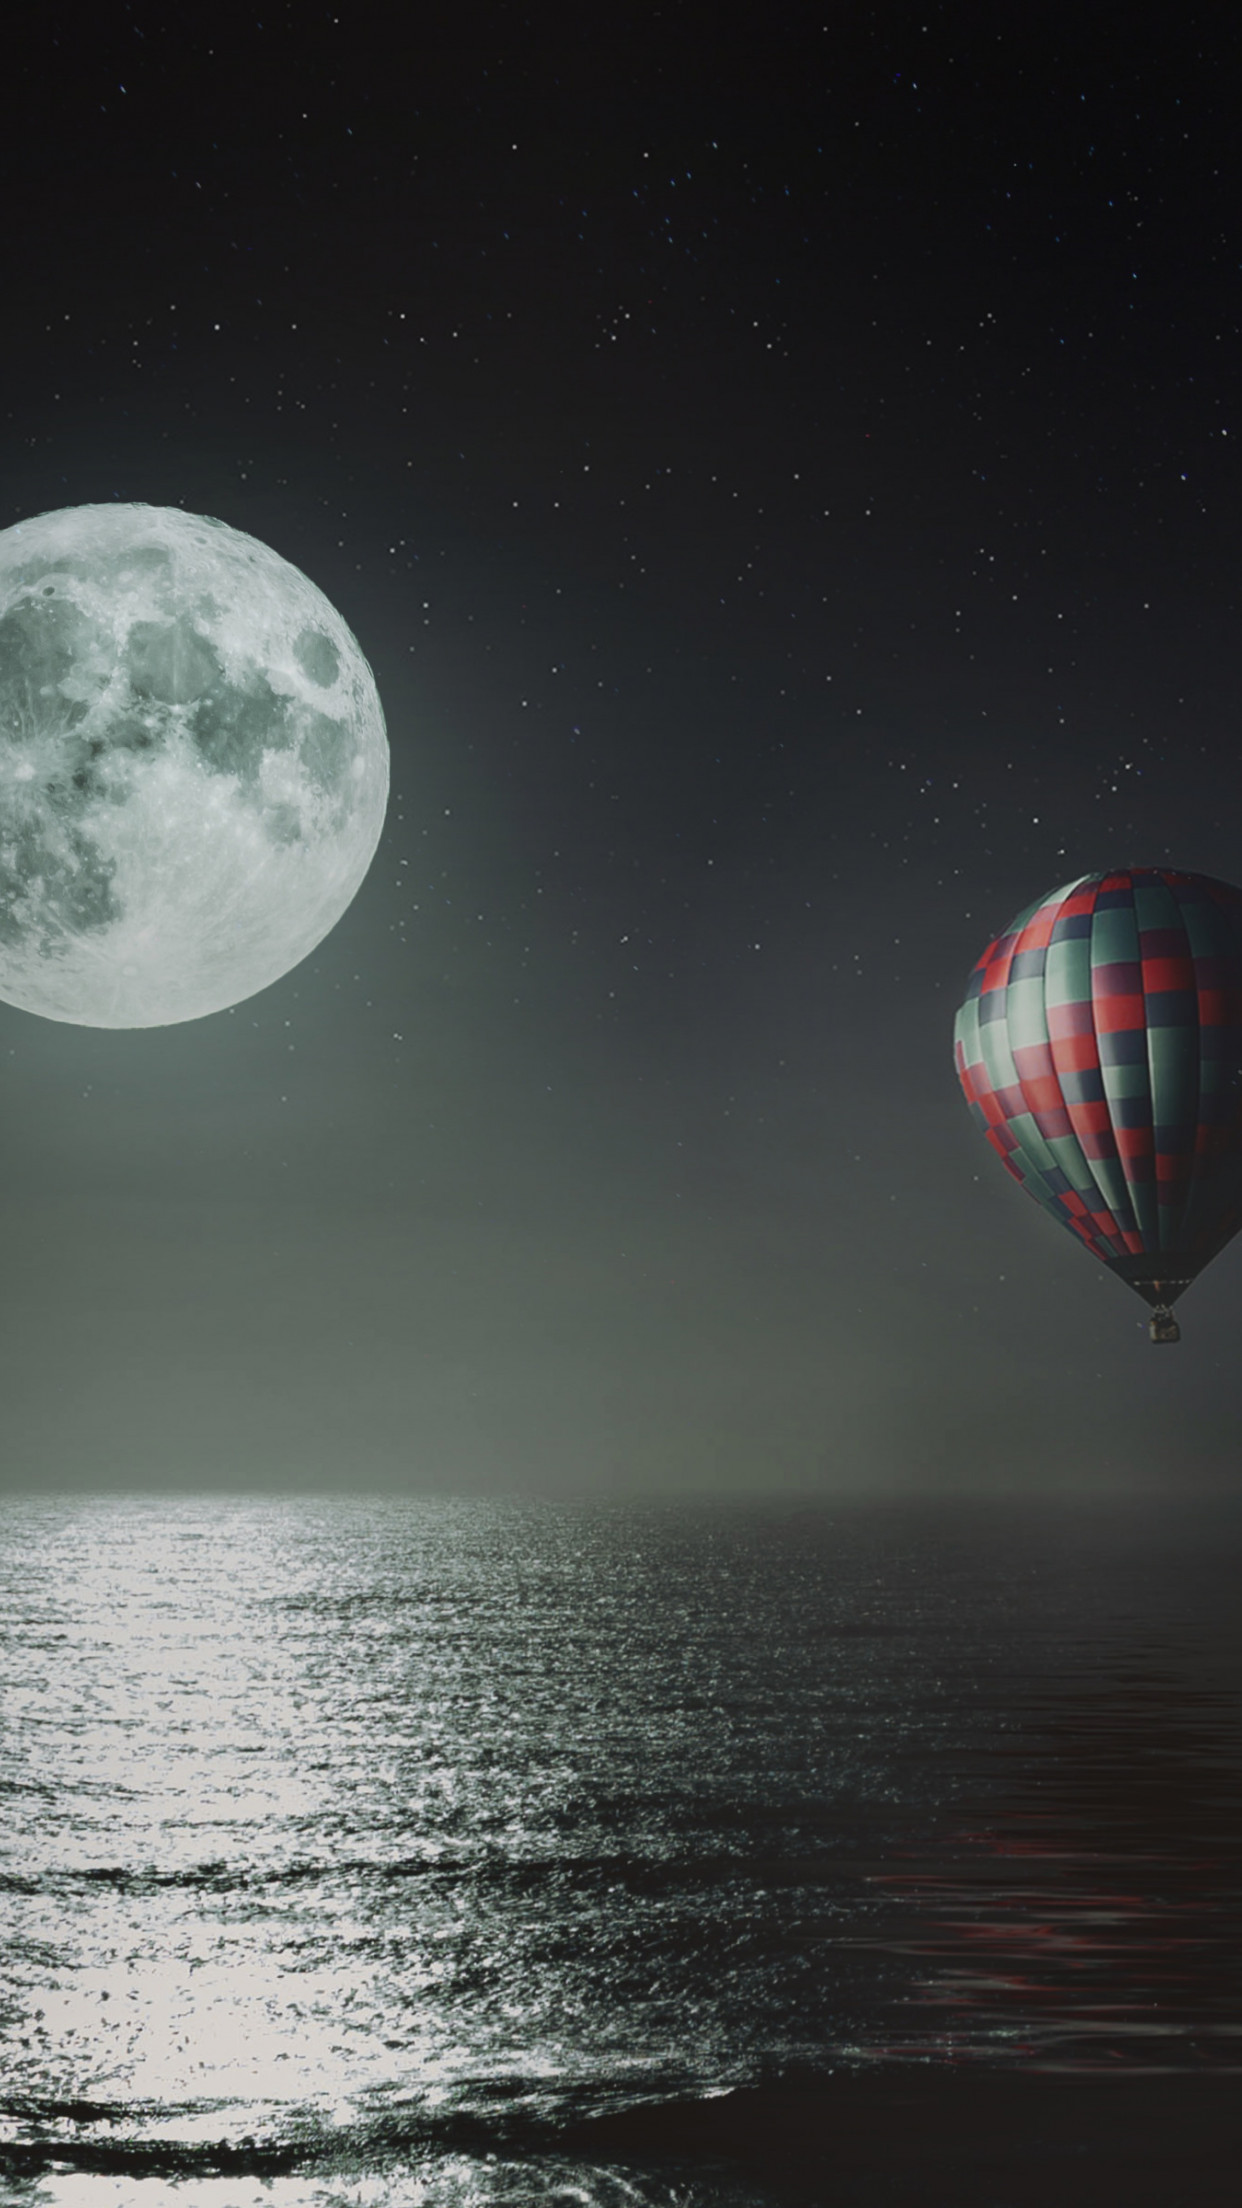 Hot air balloon over the night sky wallpaper 1242x2208